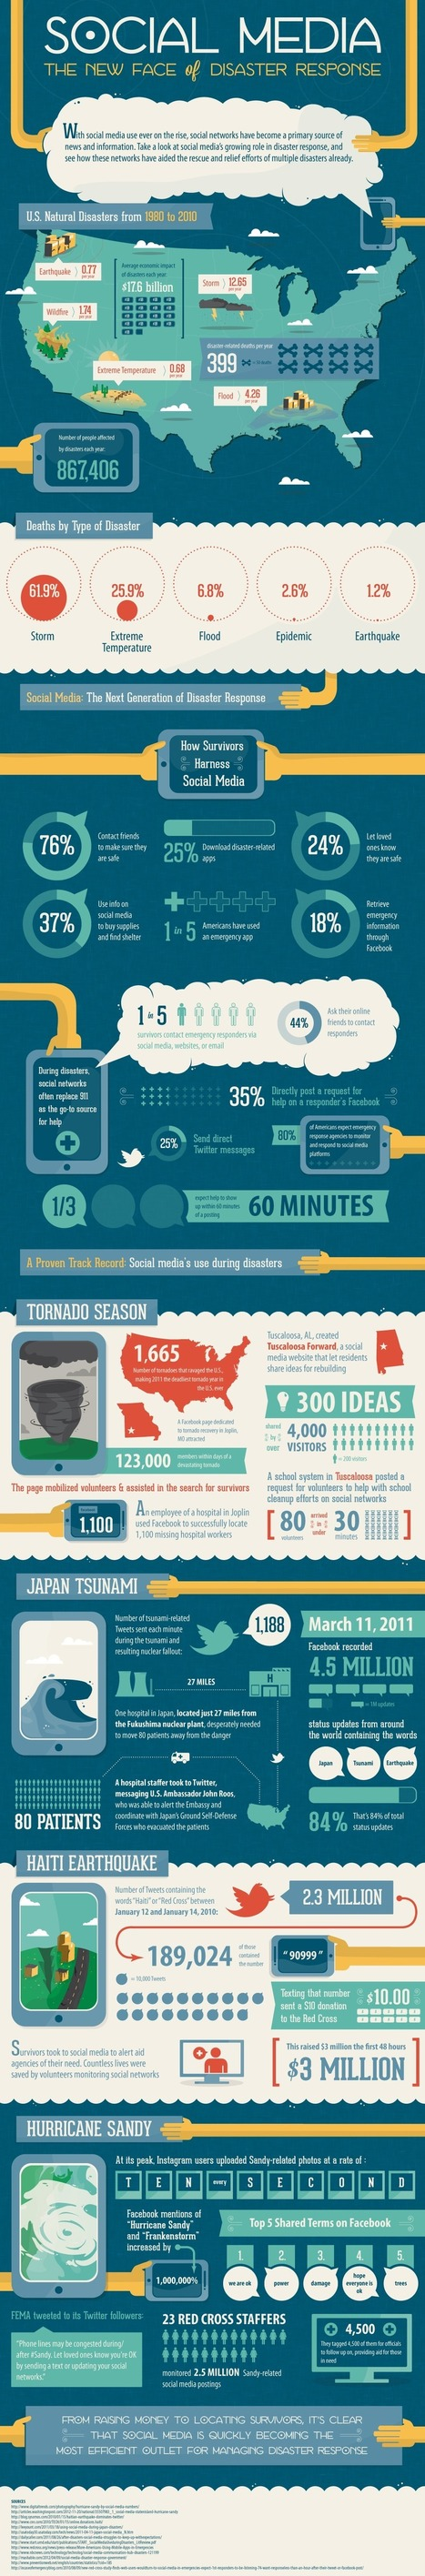 Social media: The new face of disaster response [infographic] | Casos y Campañas Social Media | Scoop.it